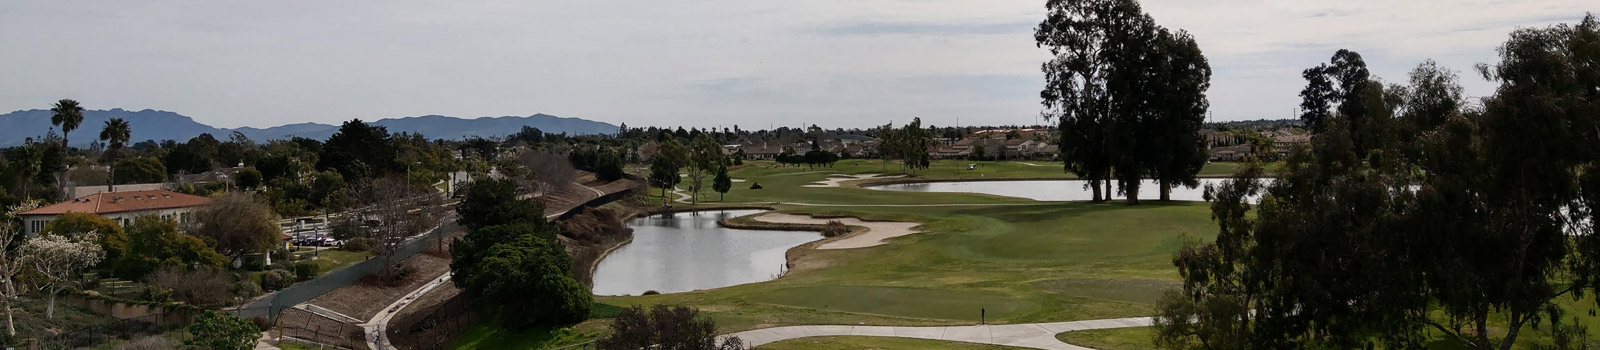 River Ridge Golf Club - Victoria Lakes Course